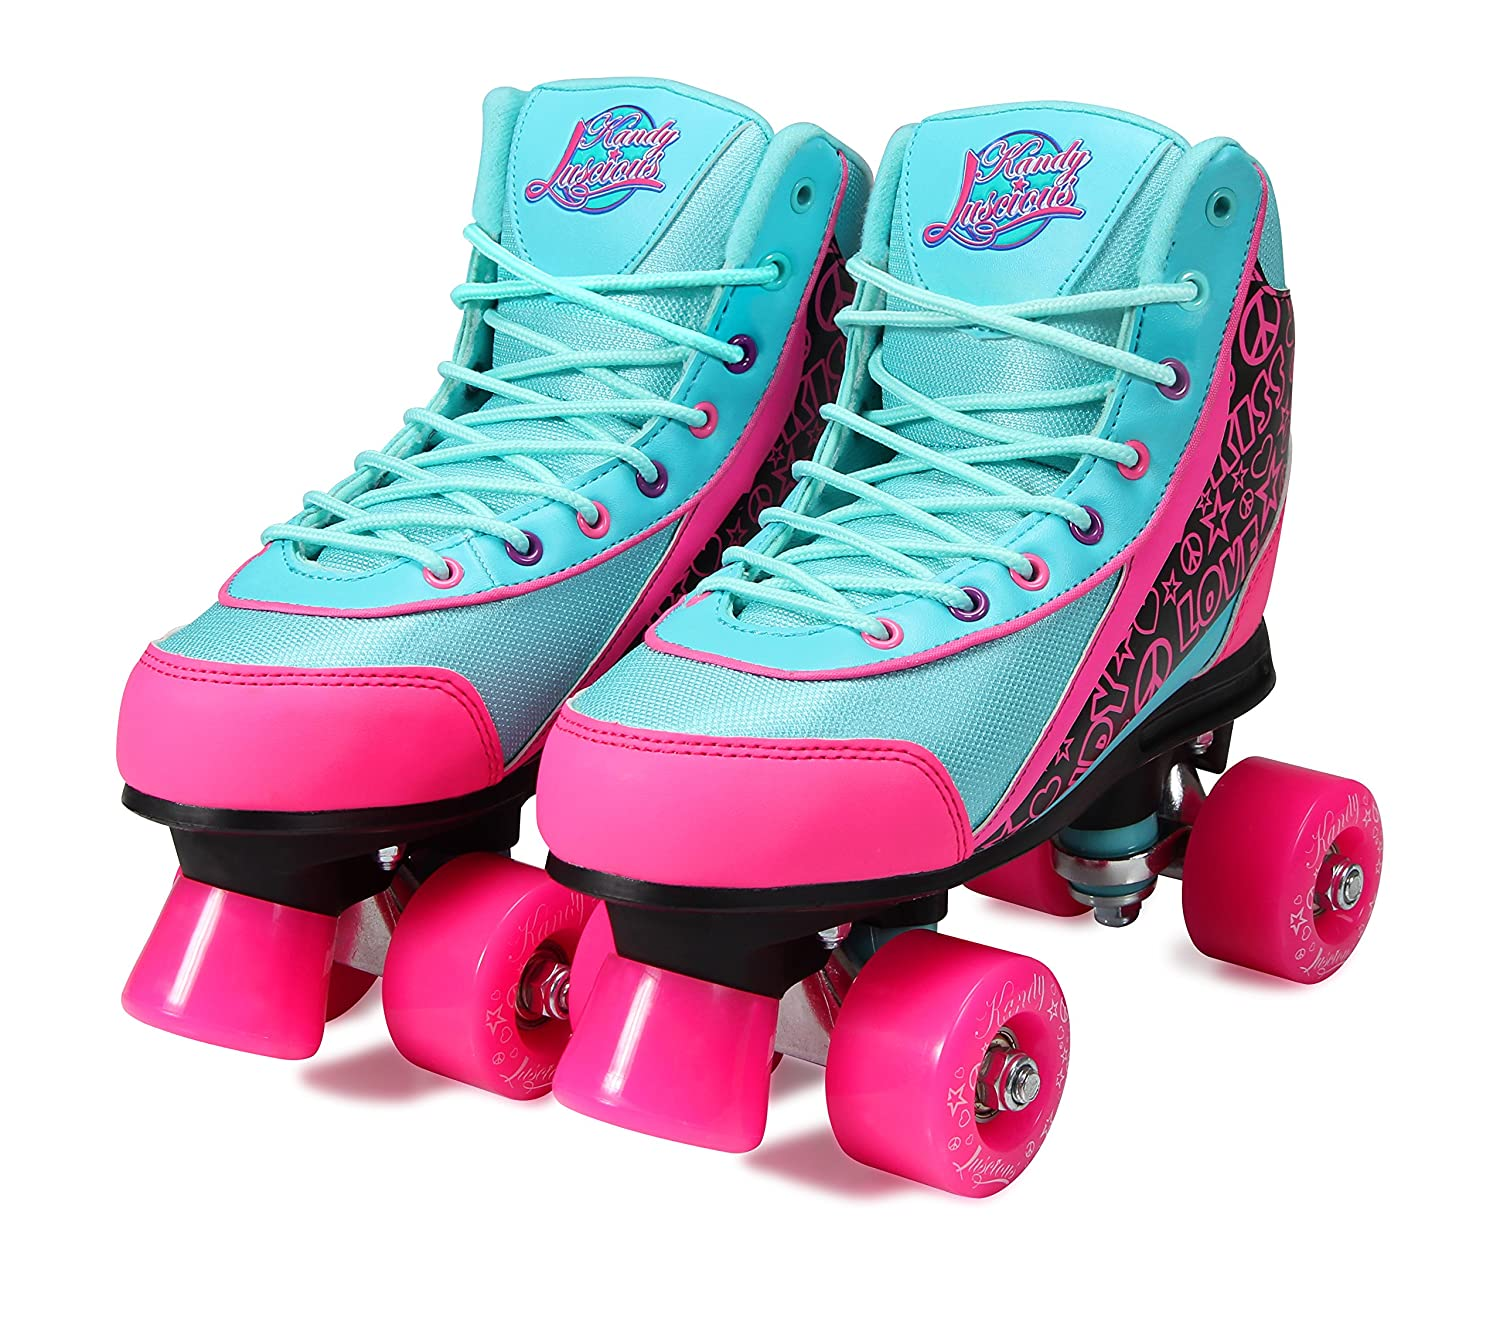 Kandy-Luscious Kid s Roller Skates – Comfortable Children s Skates with Fun Colors Designs Summer Days Teal and Pink Size 3